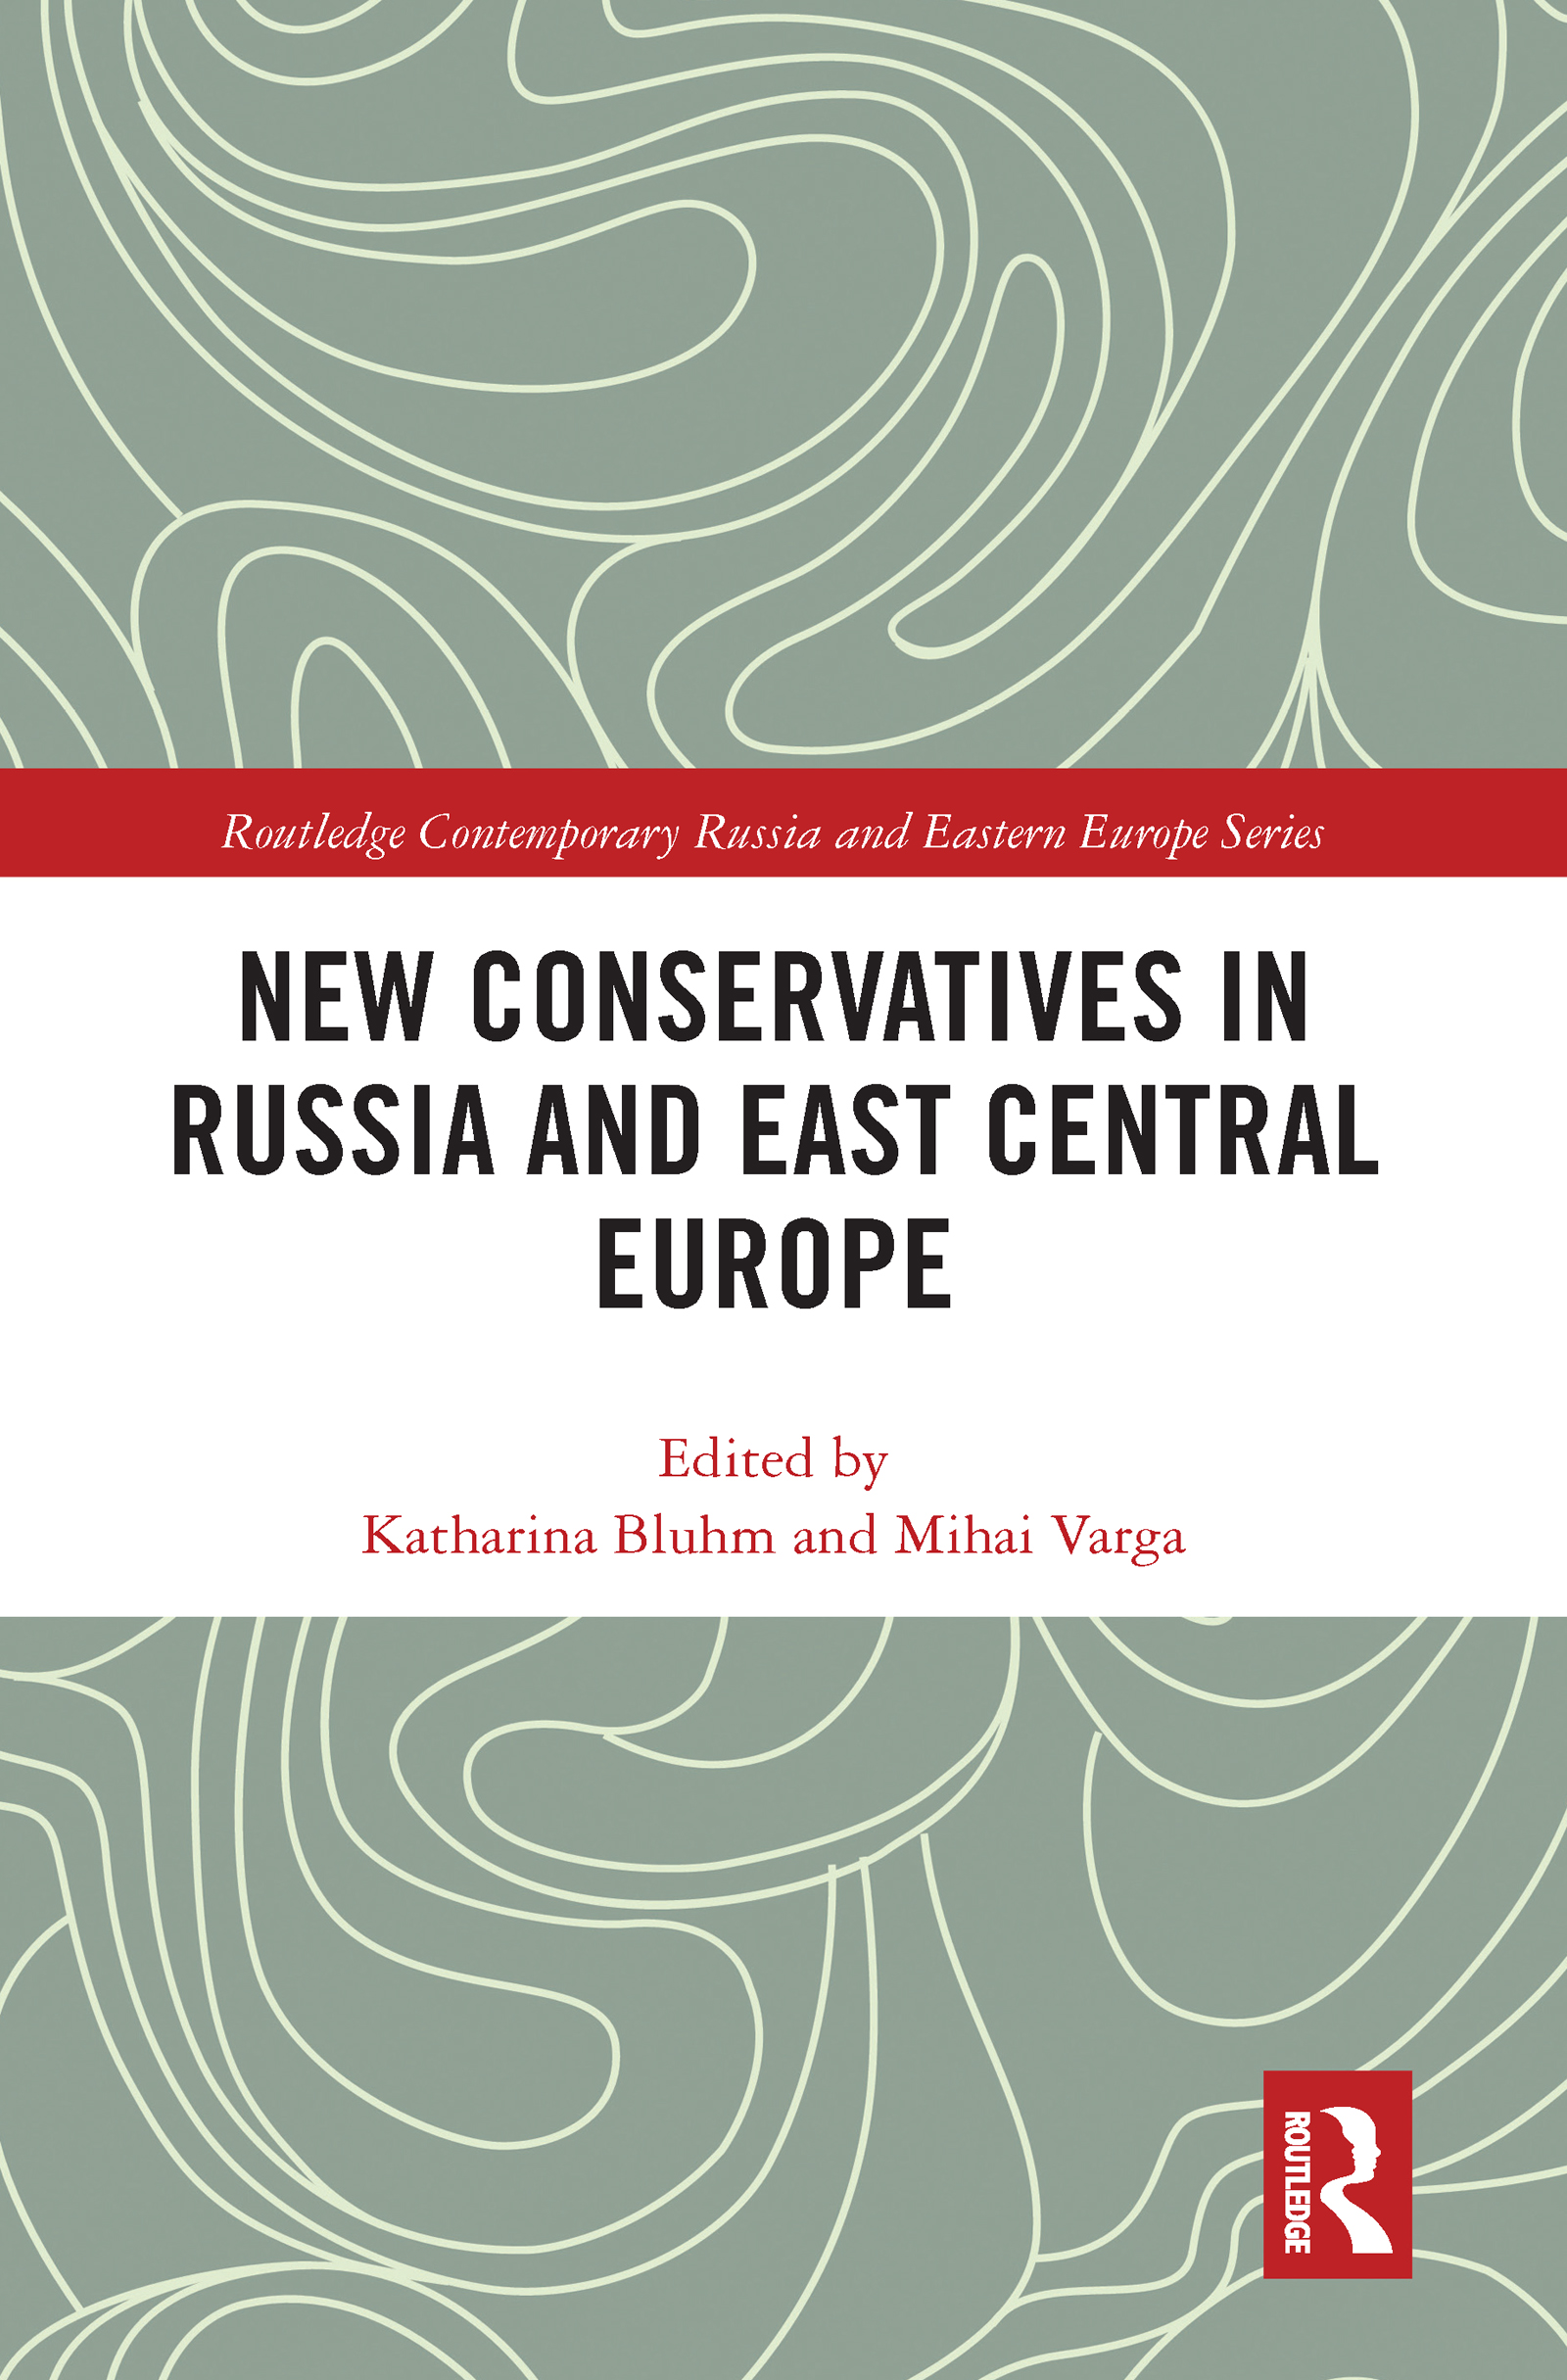 New Conservatives in Russia and East Central Europe